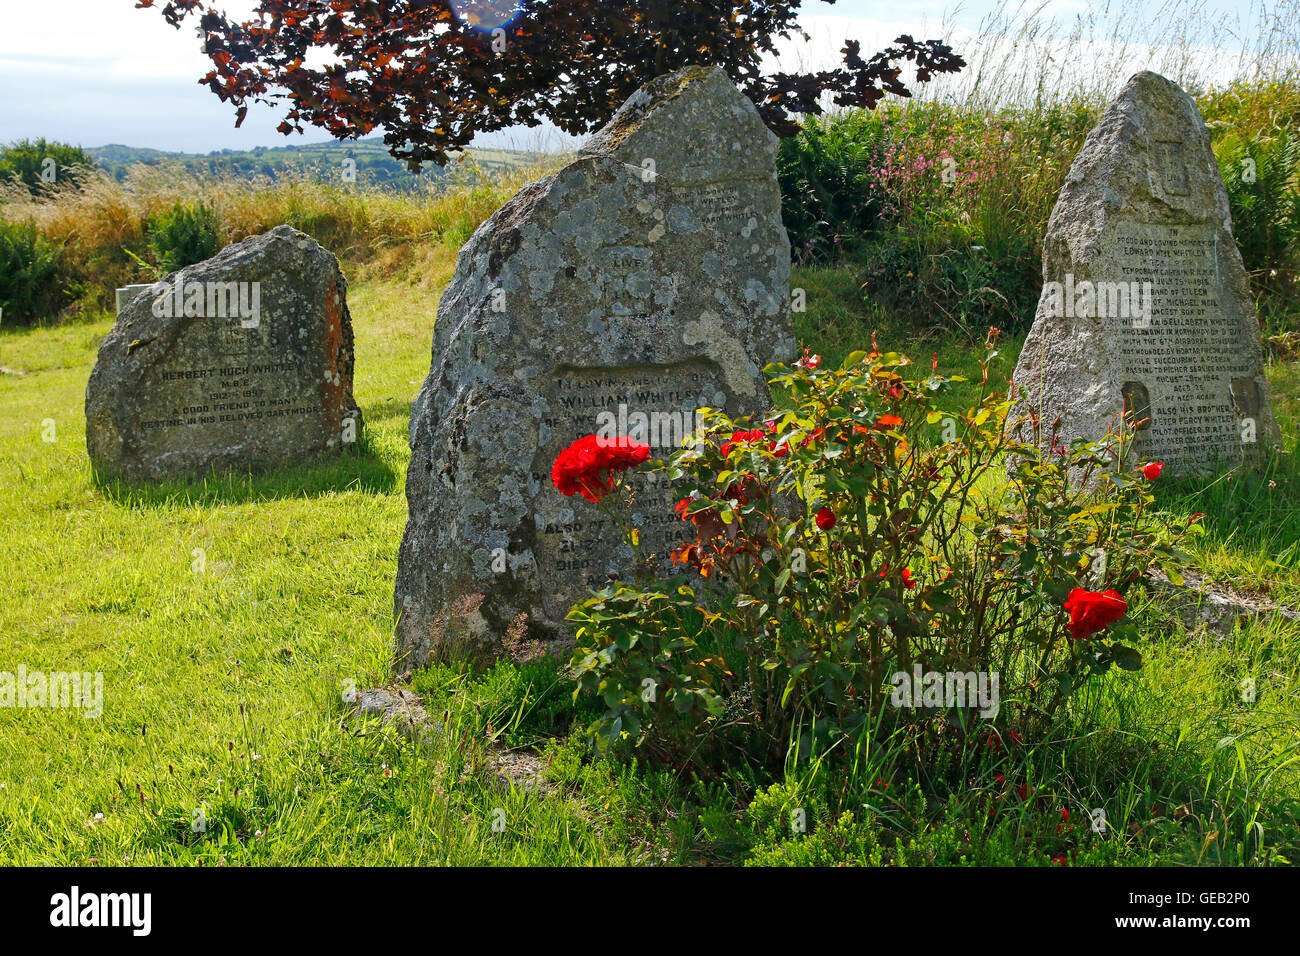 The famous & very wealthy Whitley family plot of four brothers grave stones in Buckland-in-the-moor graveyard - Stock Image